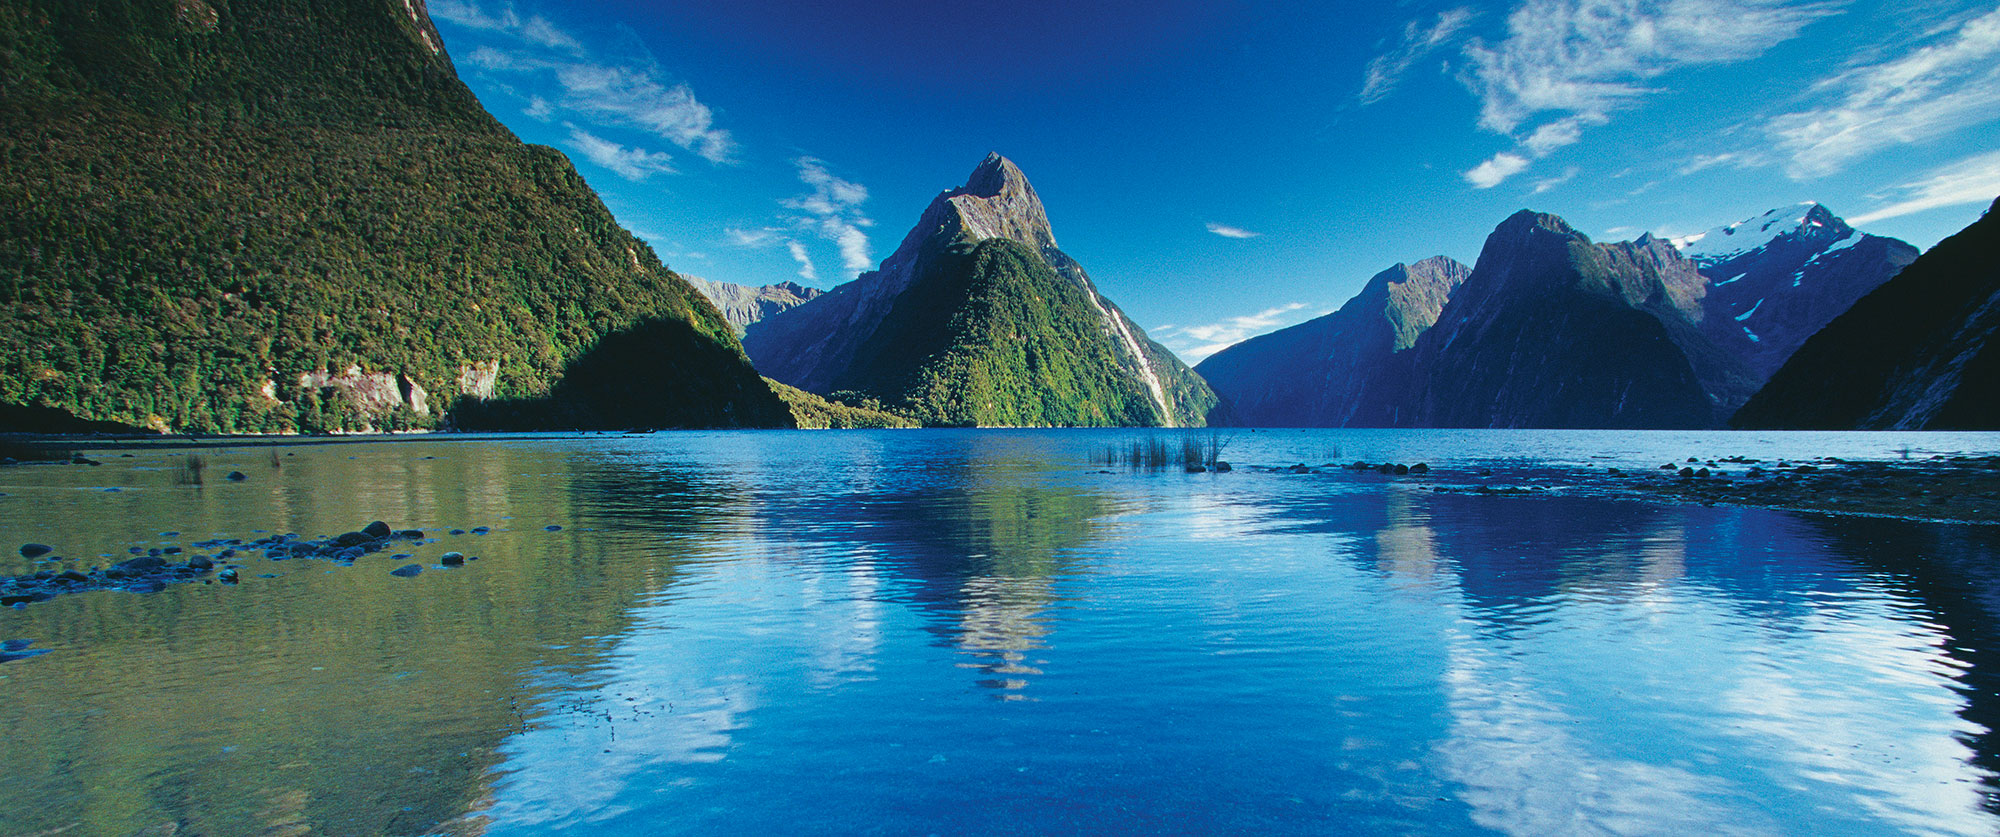 New Zealand Honeymoon Package: Feast of the Senses - Milford Sound